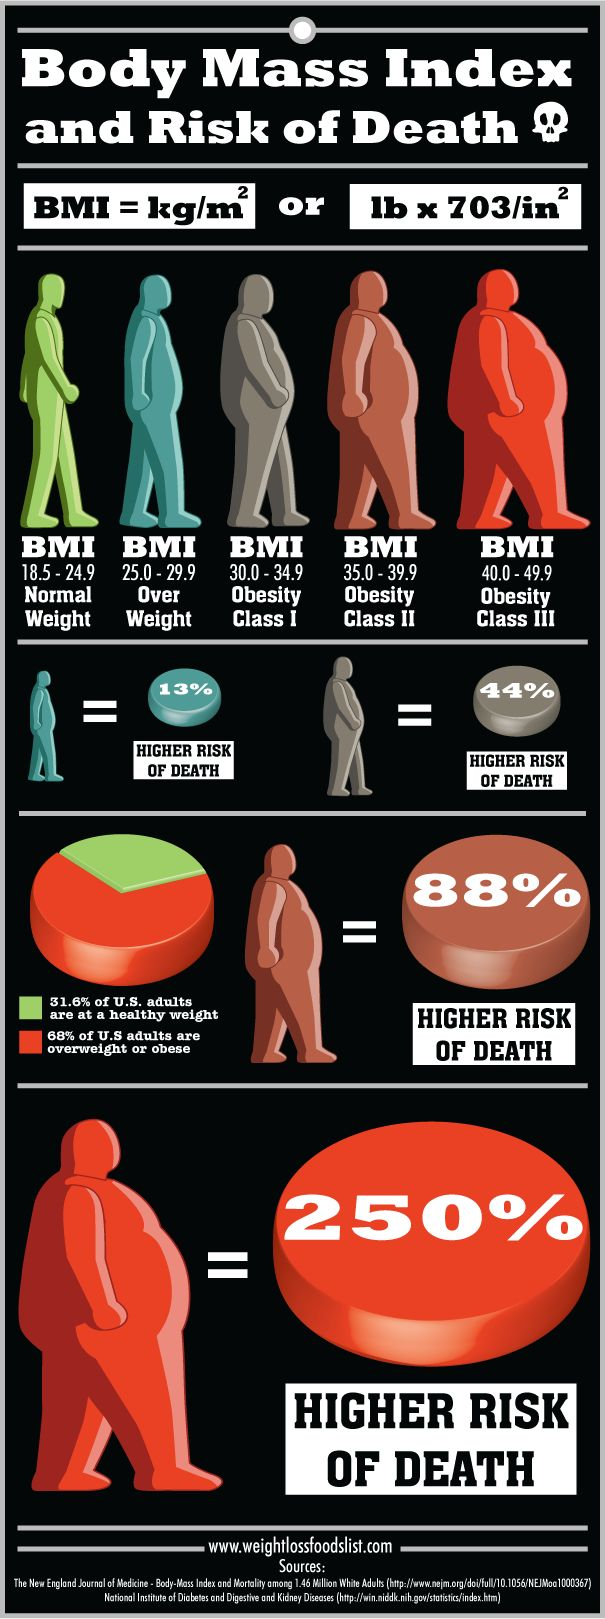 I'm Re Pinning This Only Becuase I Find It Entertaining That A Normal Bmi